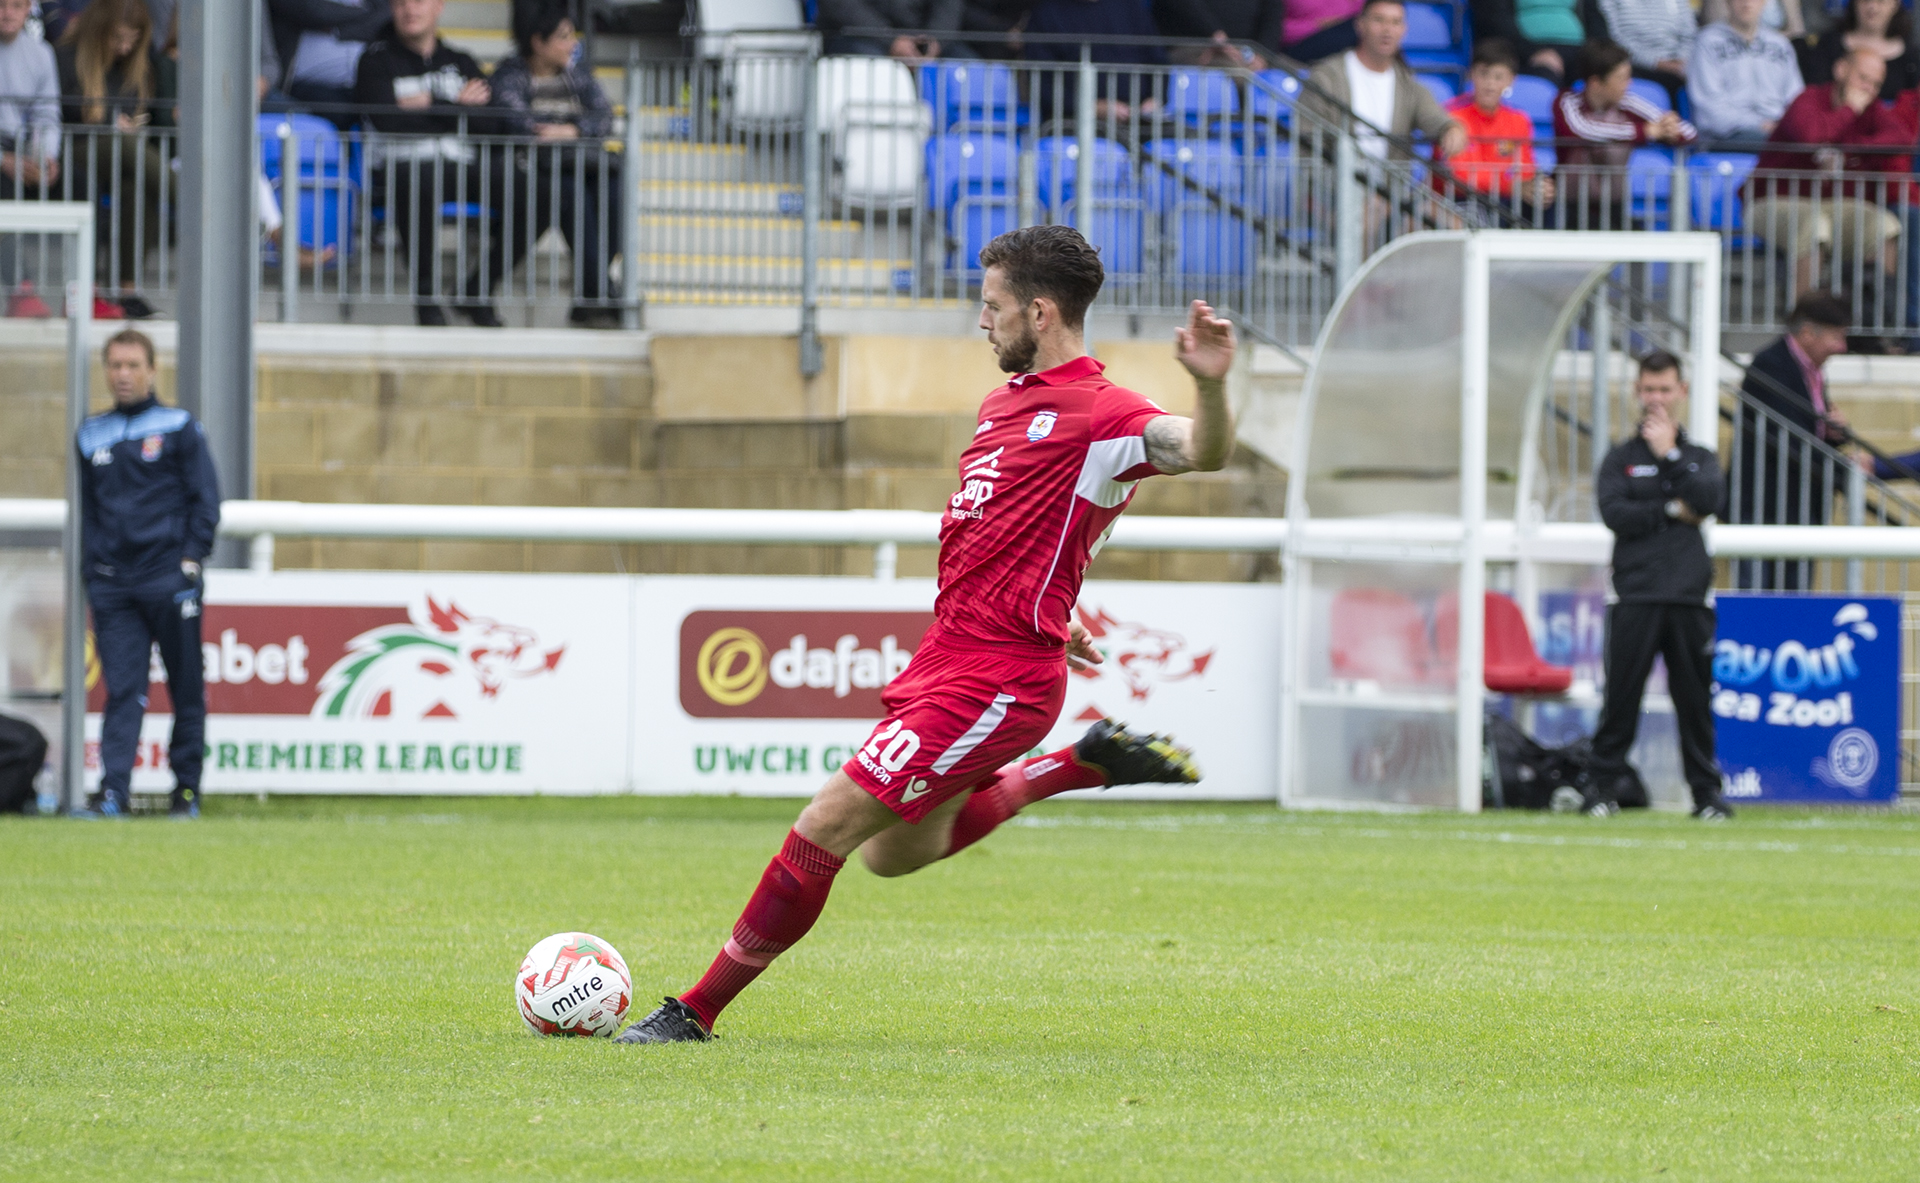 Wes Baynes strikes a spectacular free kick to give The Nomads the lead on the third minute - © NCM Media